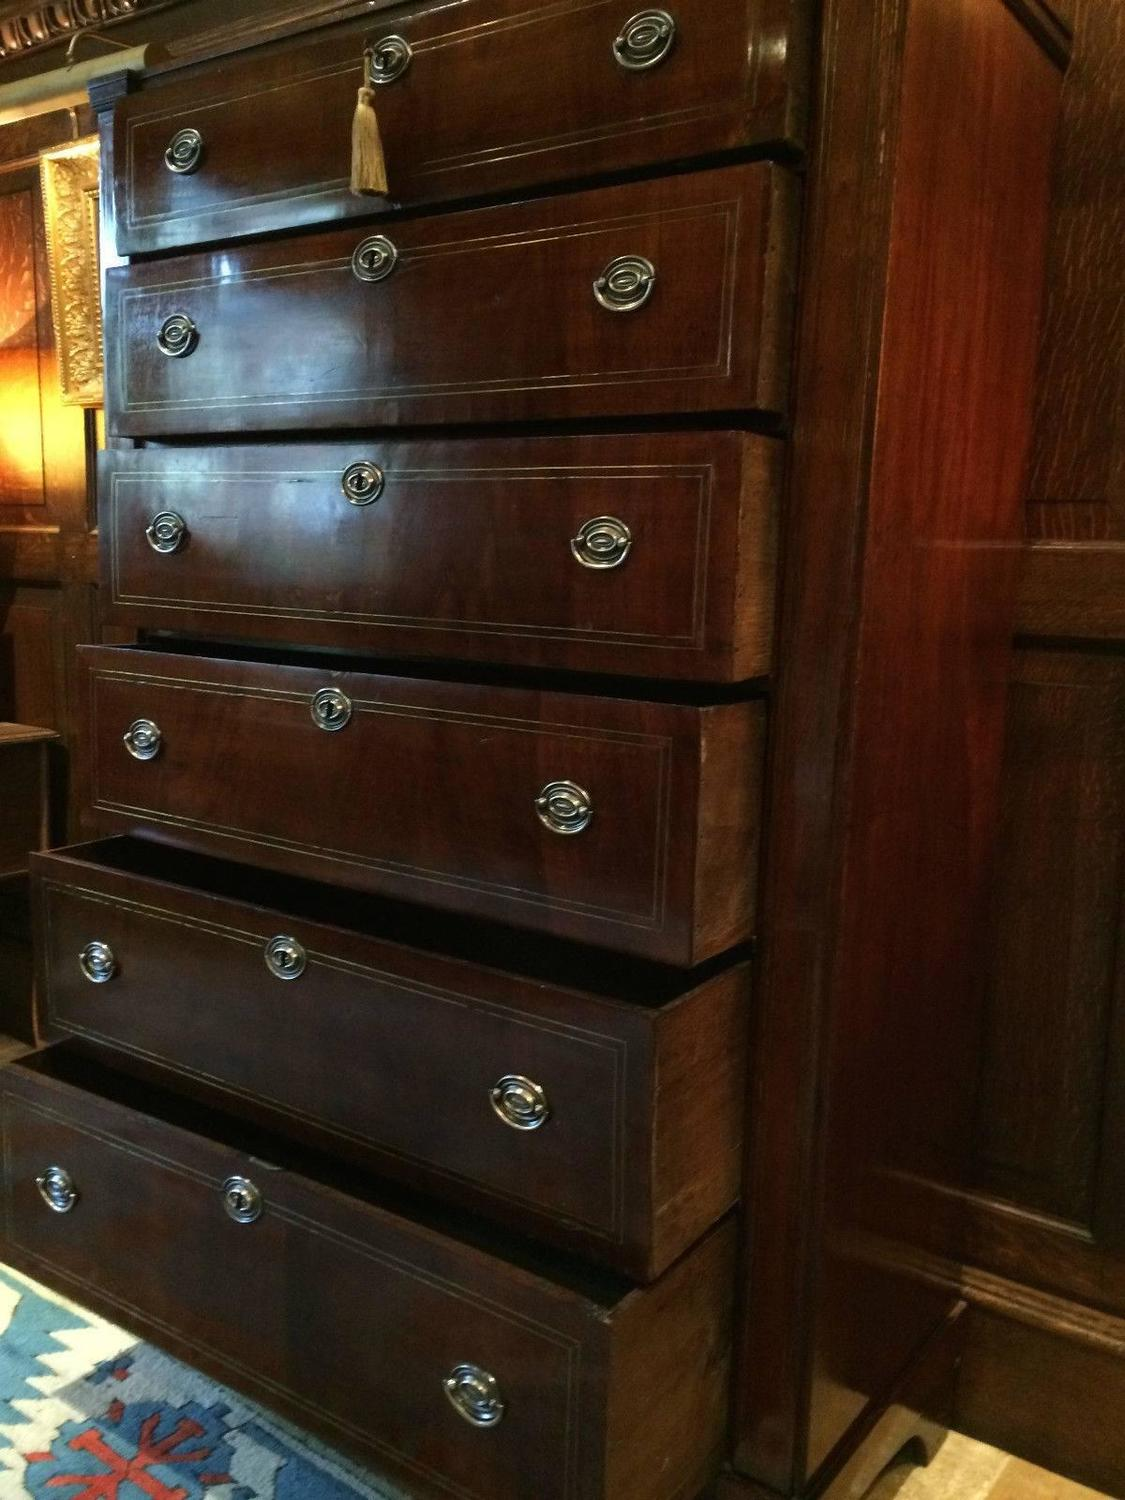 #B39718 George III Antique Mahogany Tallboy Chest Of Drawers  with 1125x1500 px of Highly Rated Vintage Tallboy Chest Of Drawers 15001125 picture/photo @ avoidforclosure.info